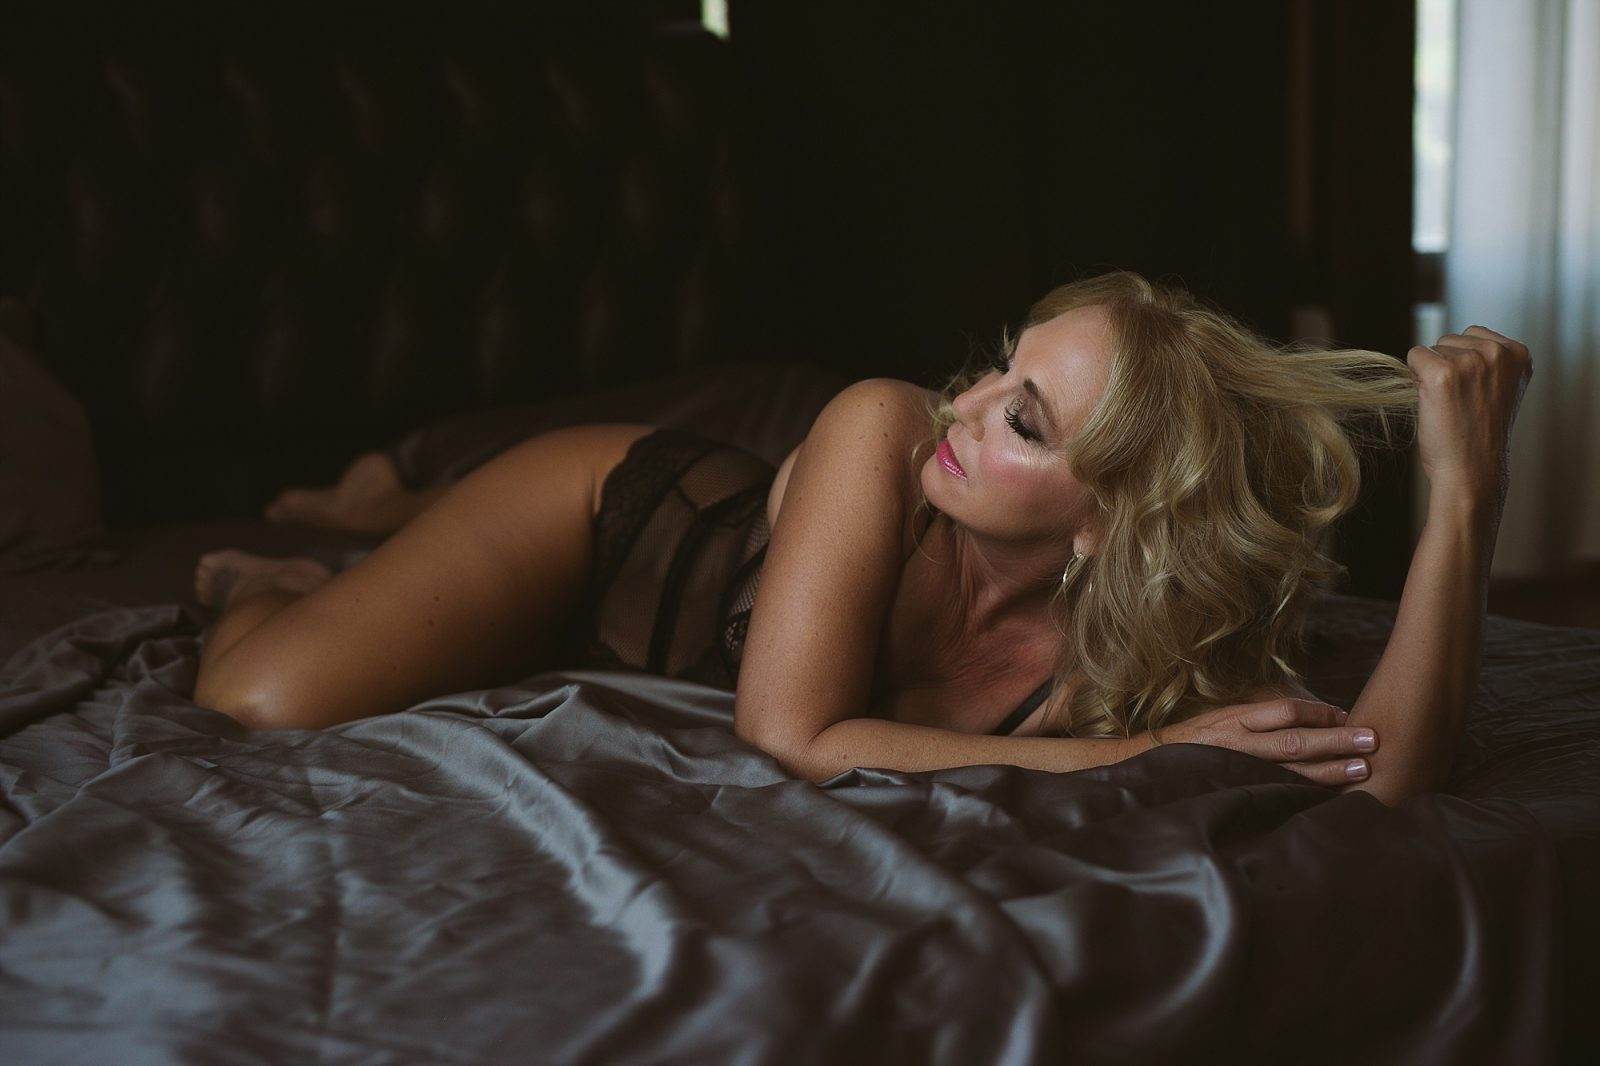 oakland bay area boudoir photography